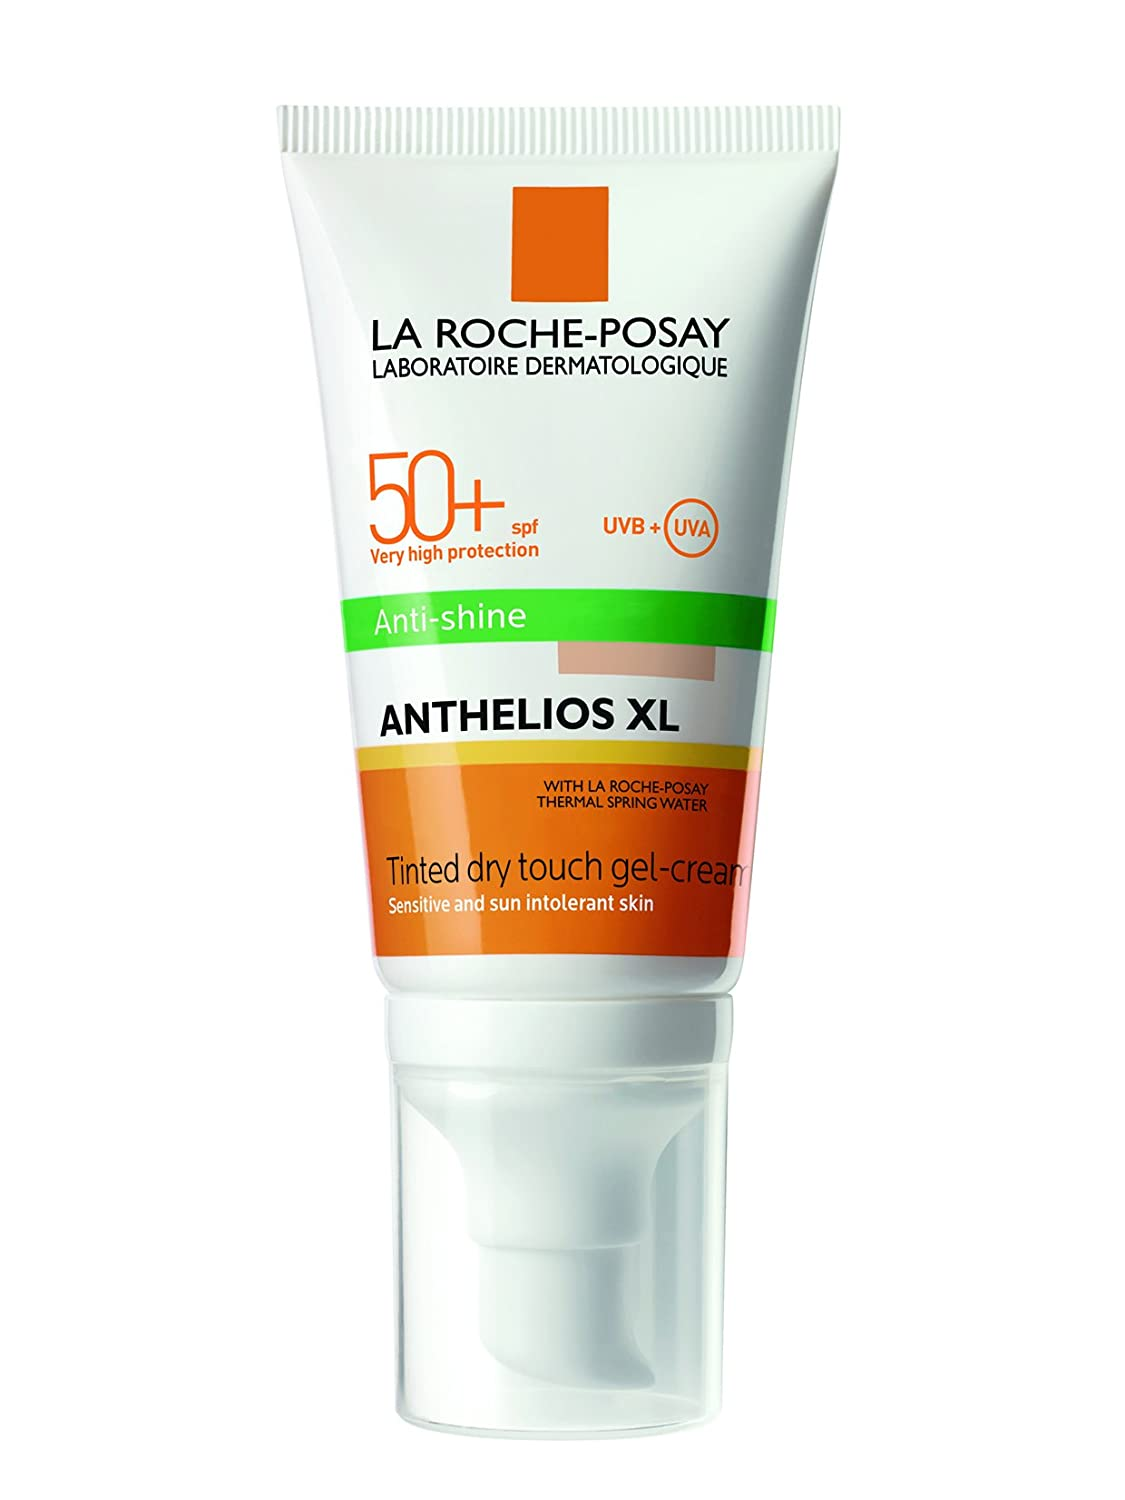 La Roche Posay Anthelios XL Gel Crema Antibrillos Tacto Seco Con Color SPF50+, 50ml